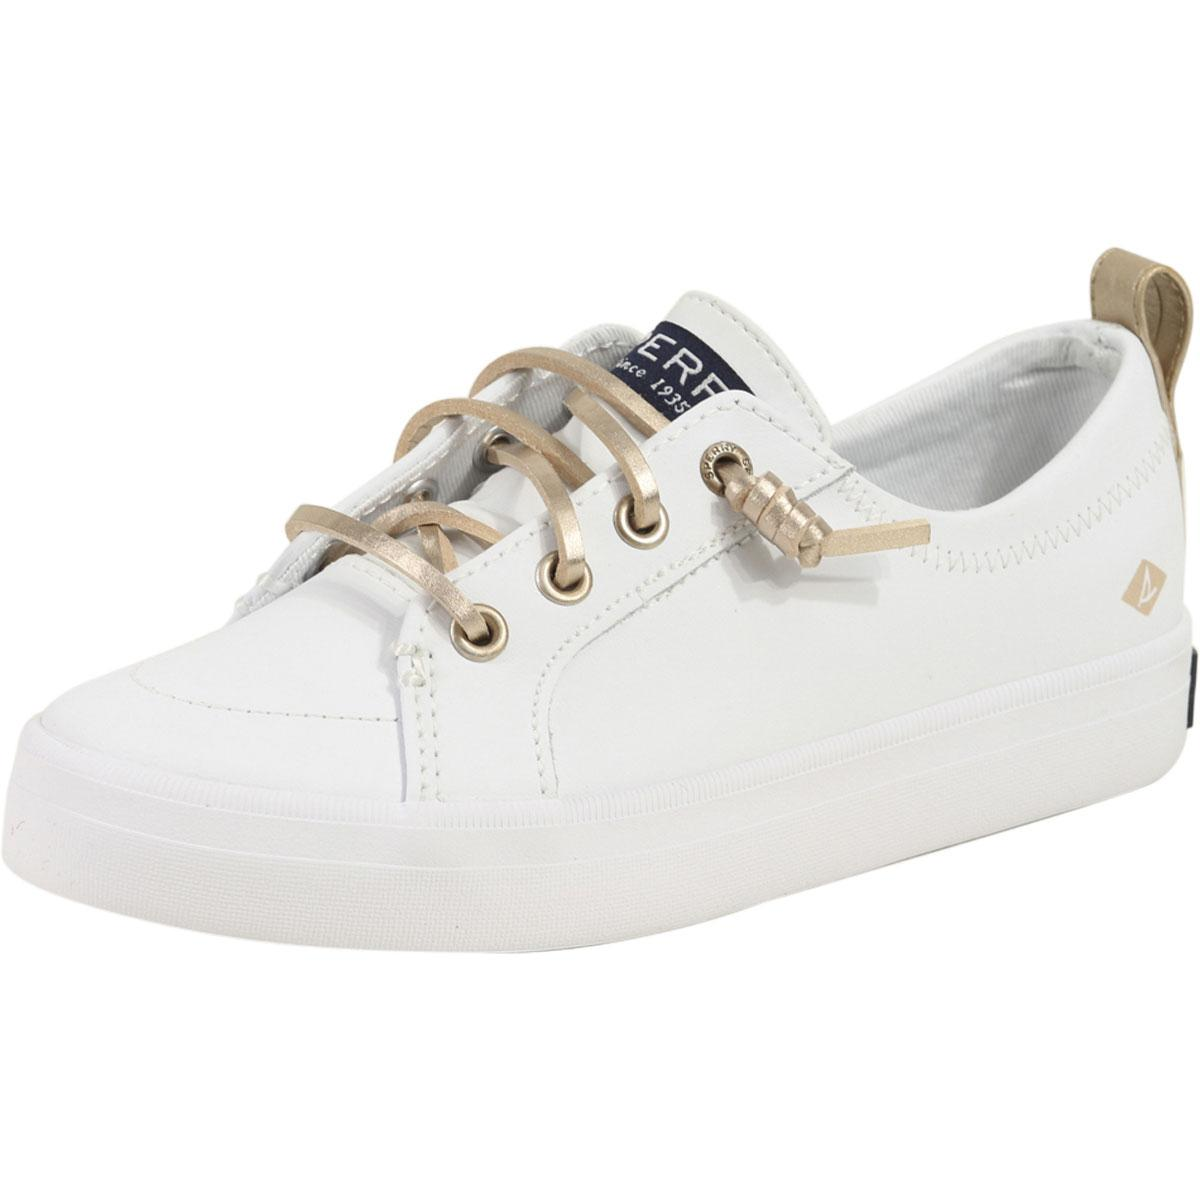 Crest Vibe Sneakers Shoes